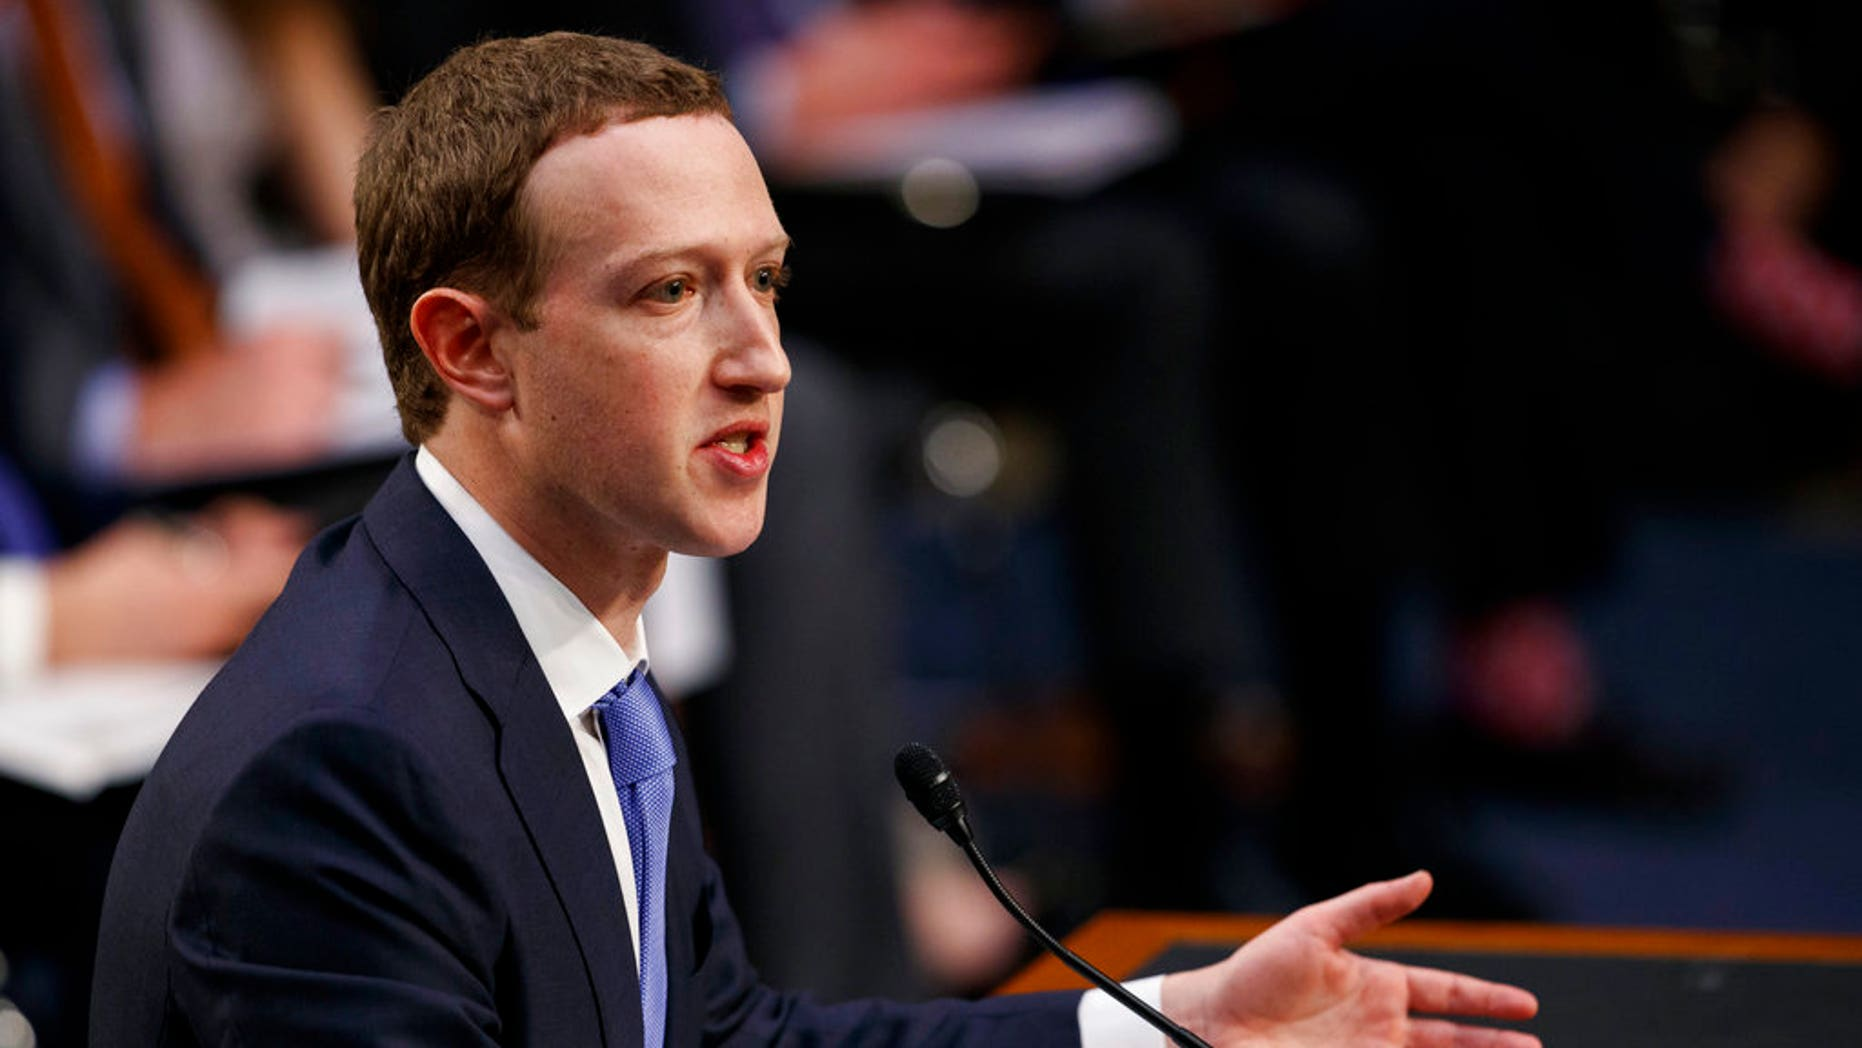 Facebook CEO Mark Zuckerberg testifies before U.S. lawmakers in April.